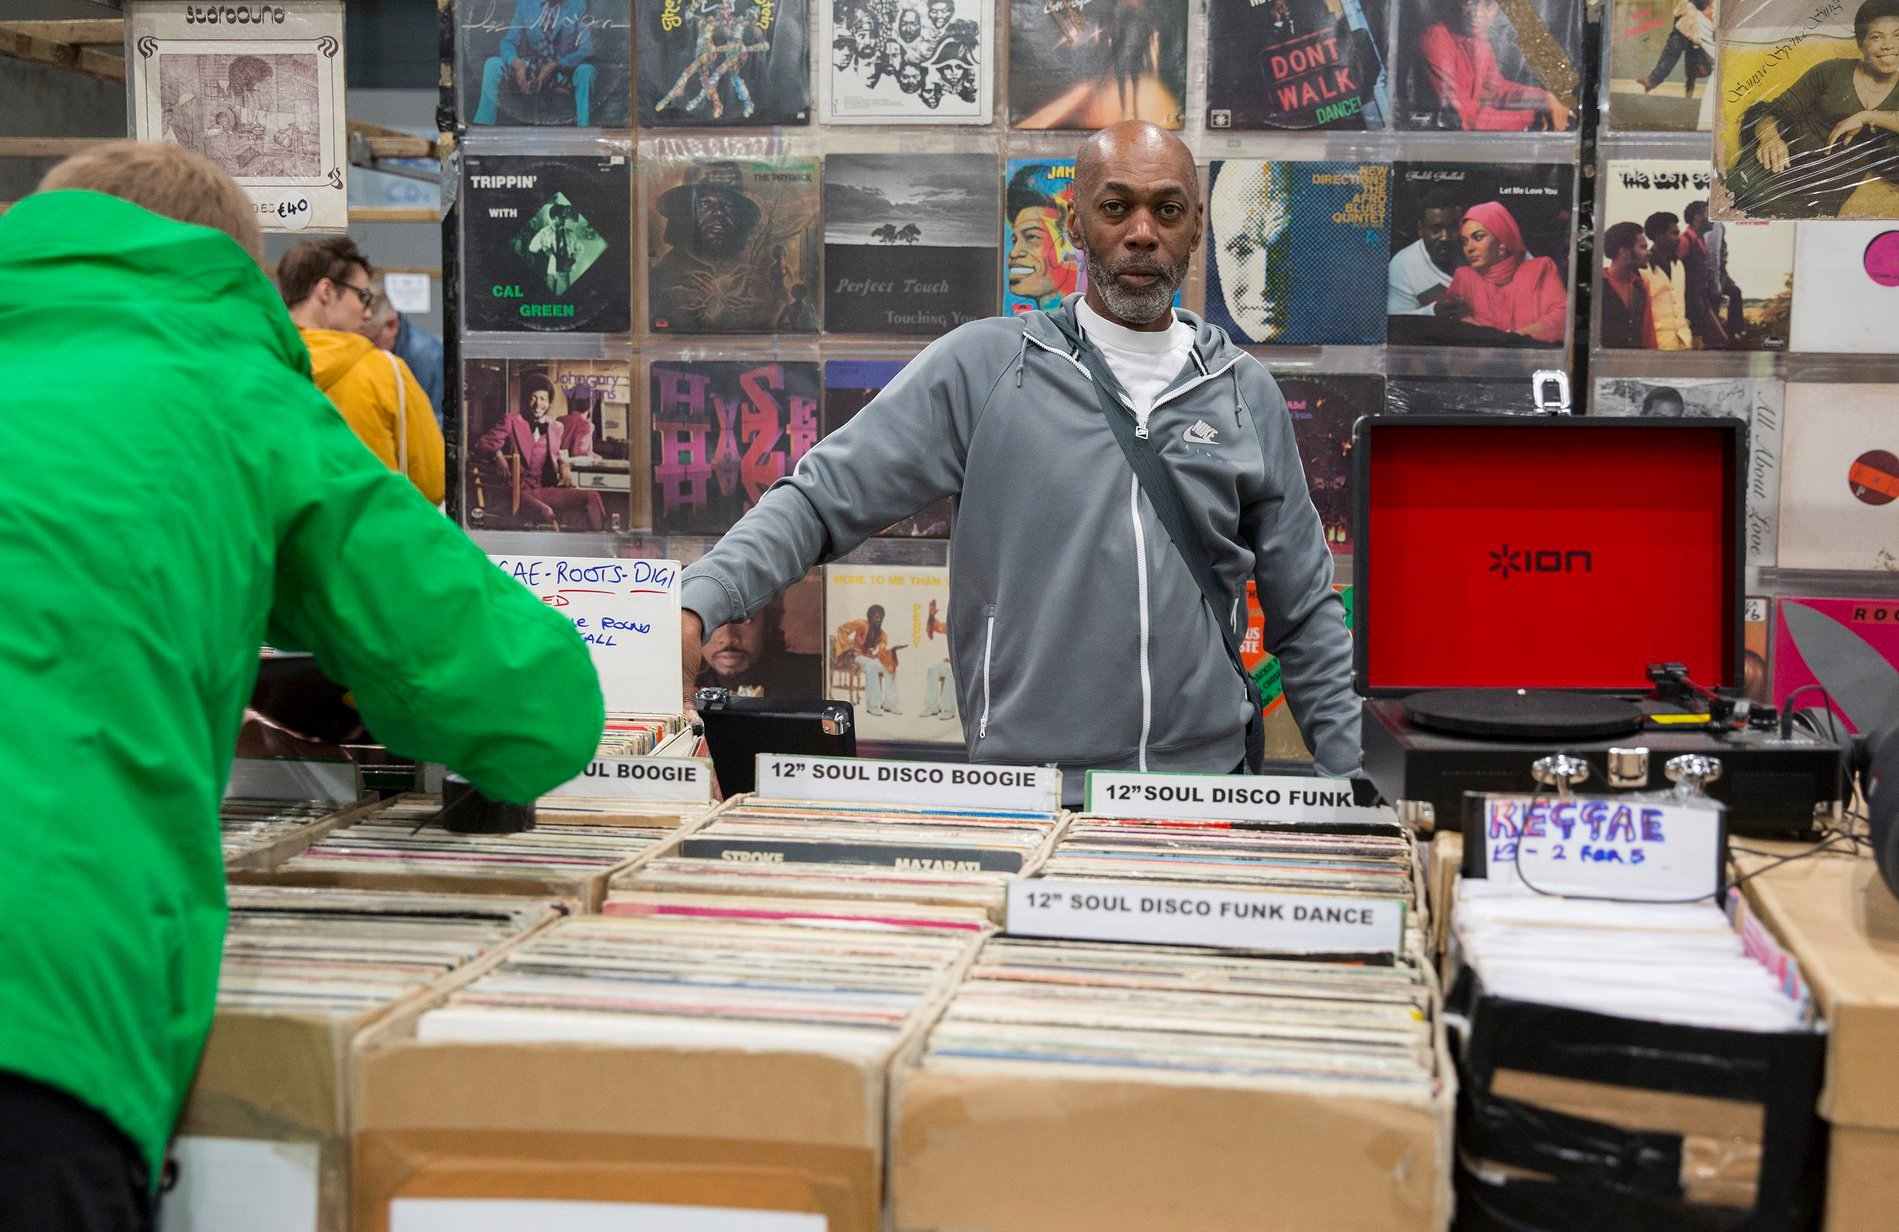 LGW21 to coincide with Mega Record & CD Fair, Europe's biggest record fair, 13 & 14 November in Utrecht